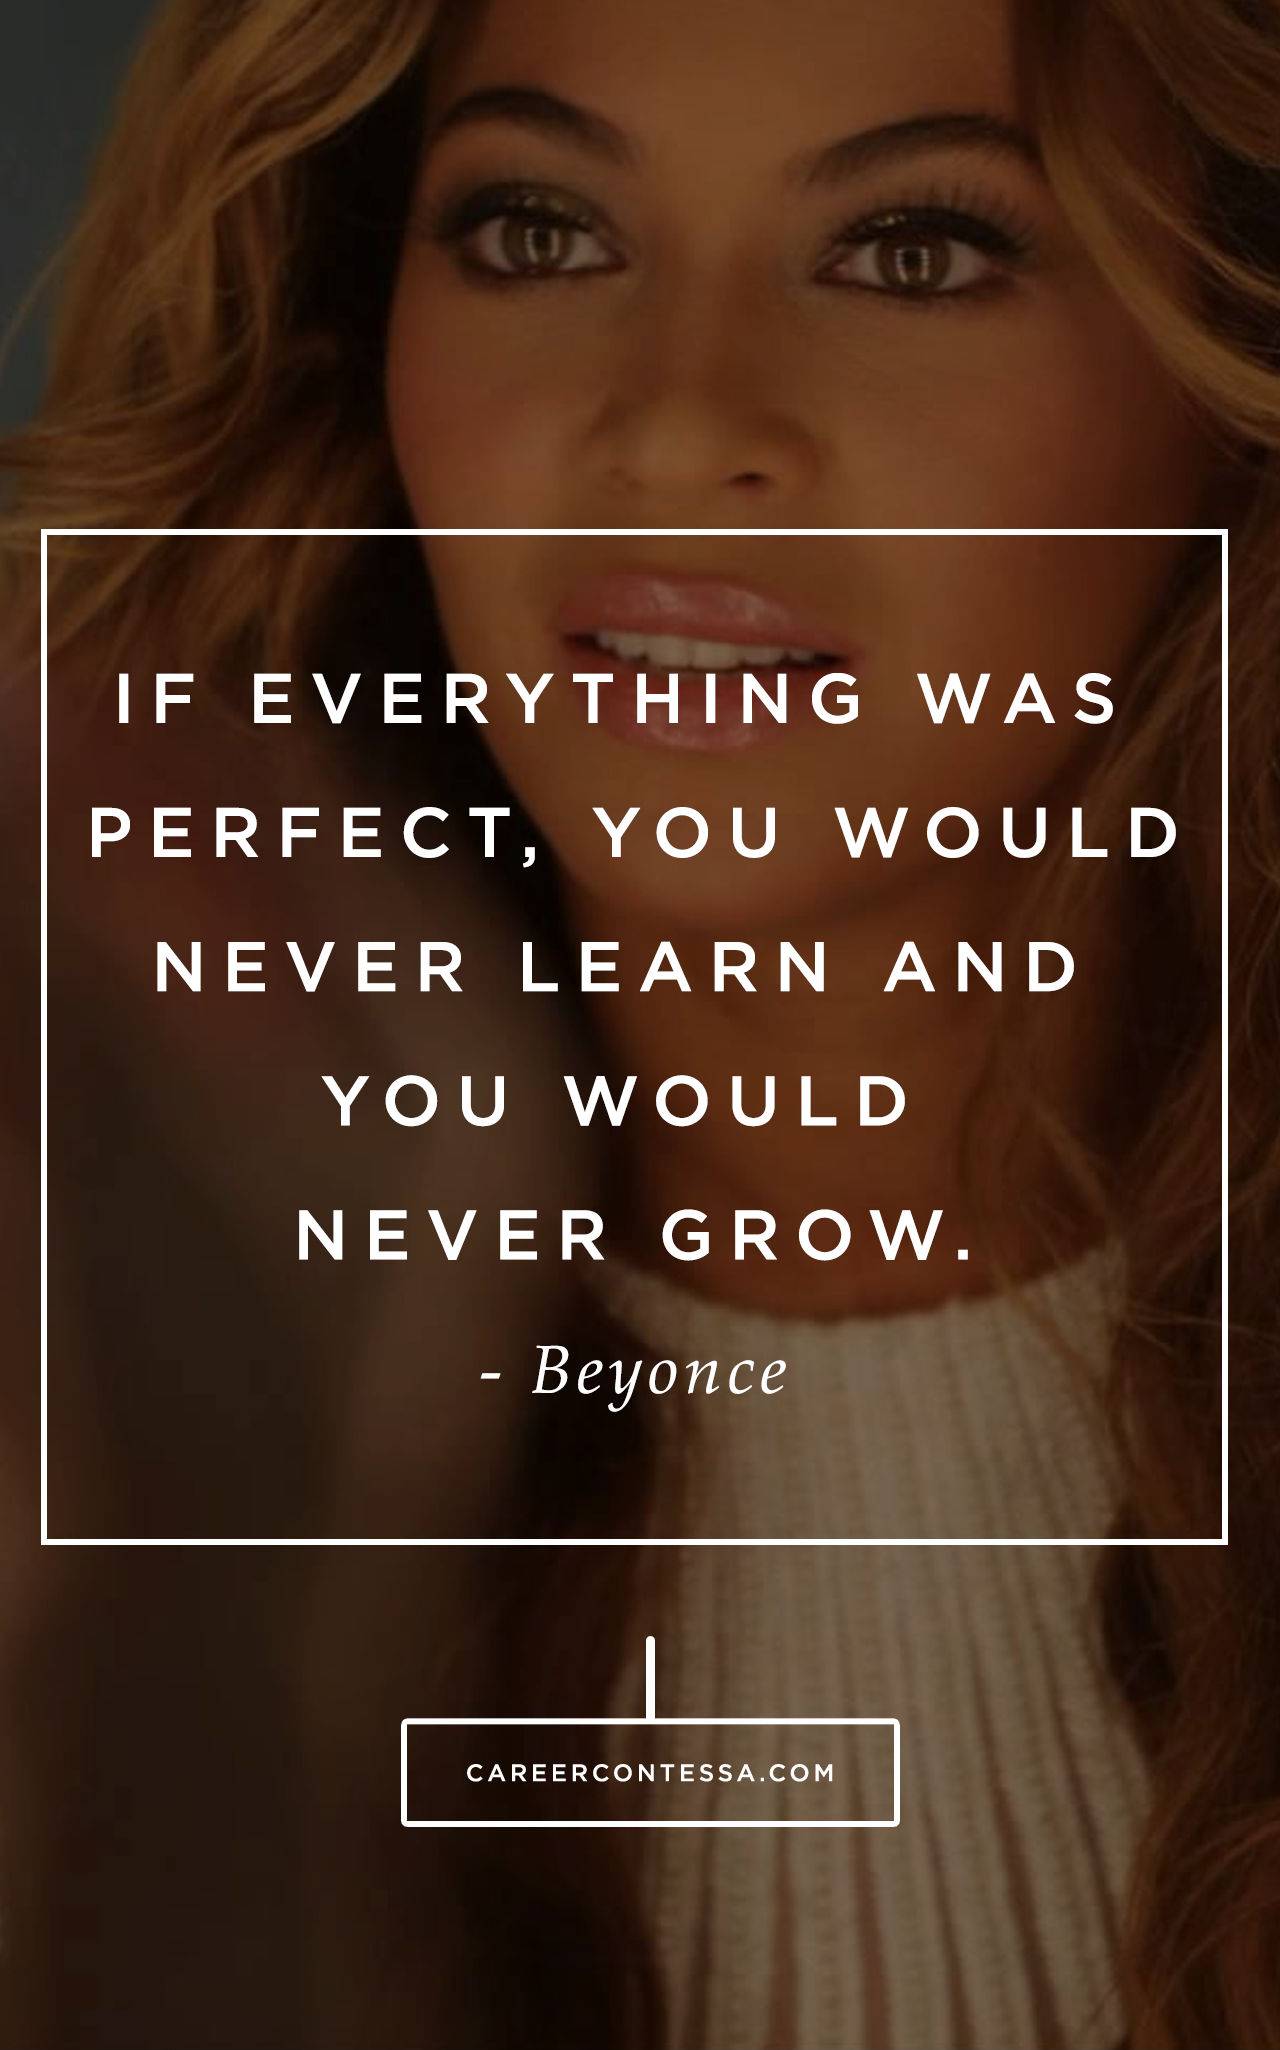 How are you daring to grow? #Beyonce #ContessaQuotes ...